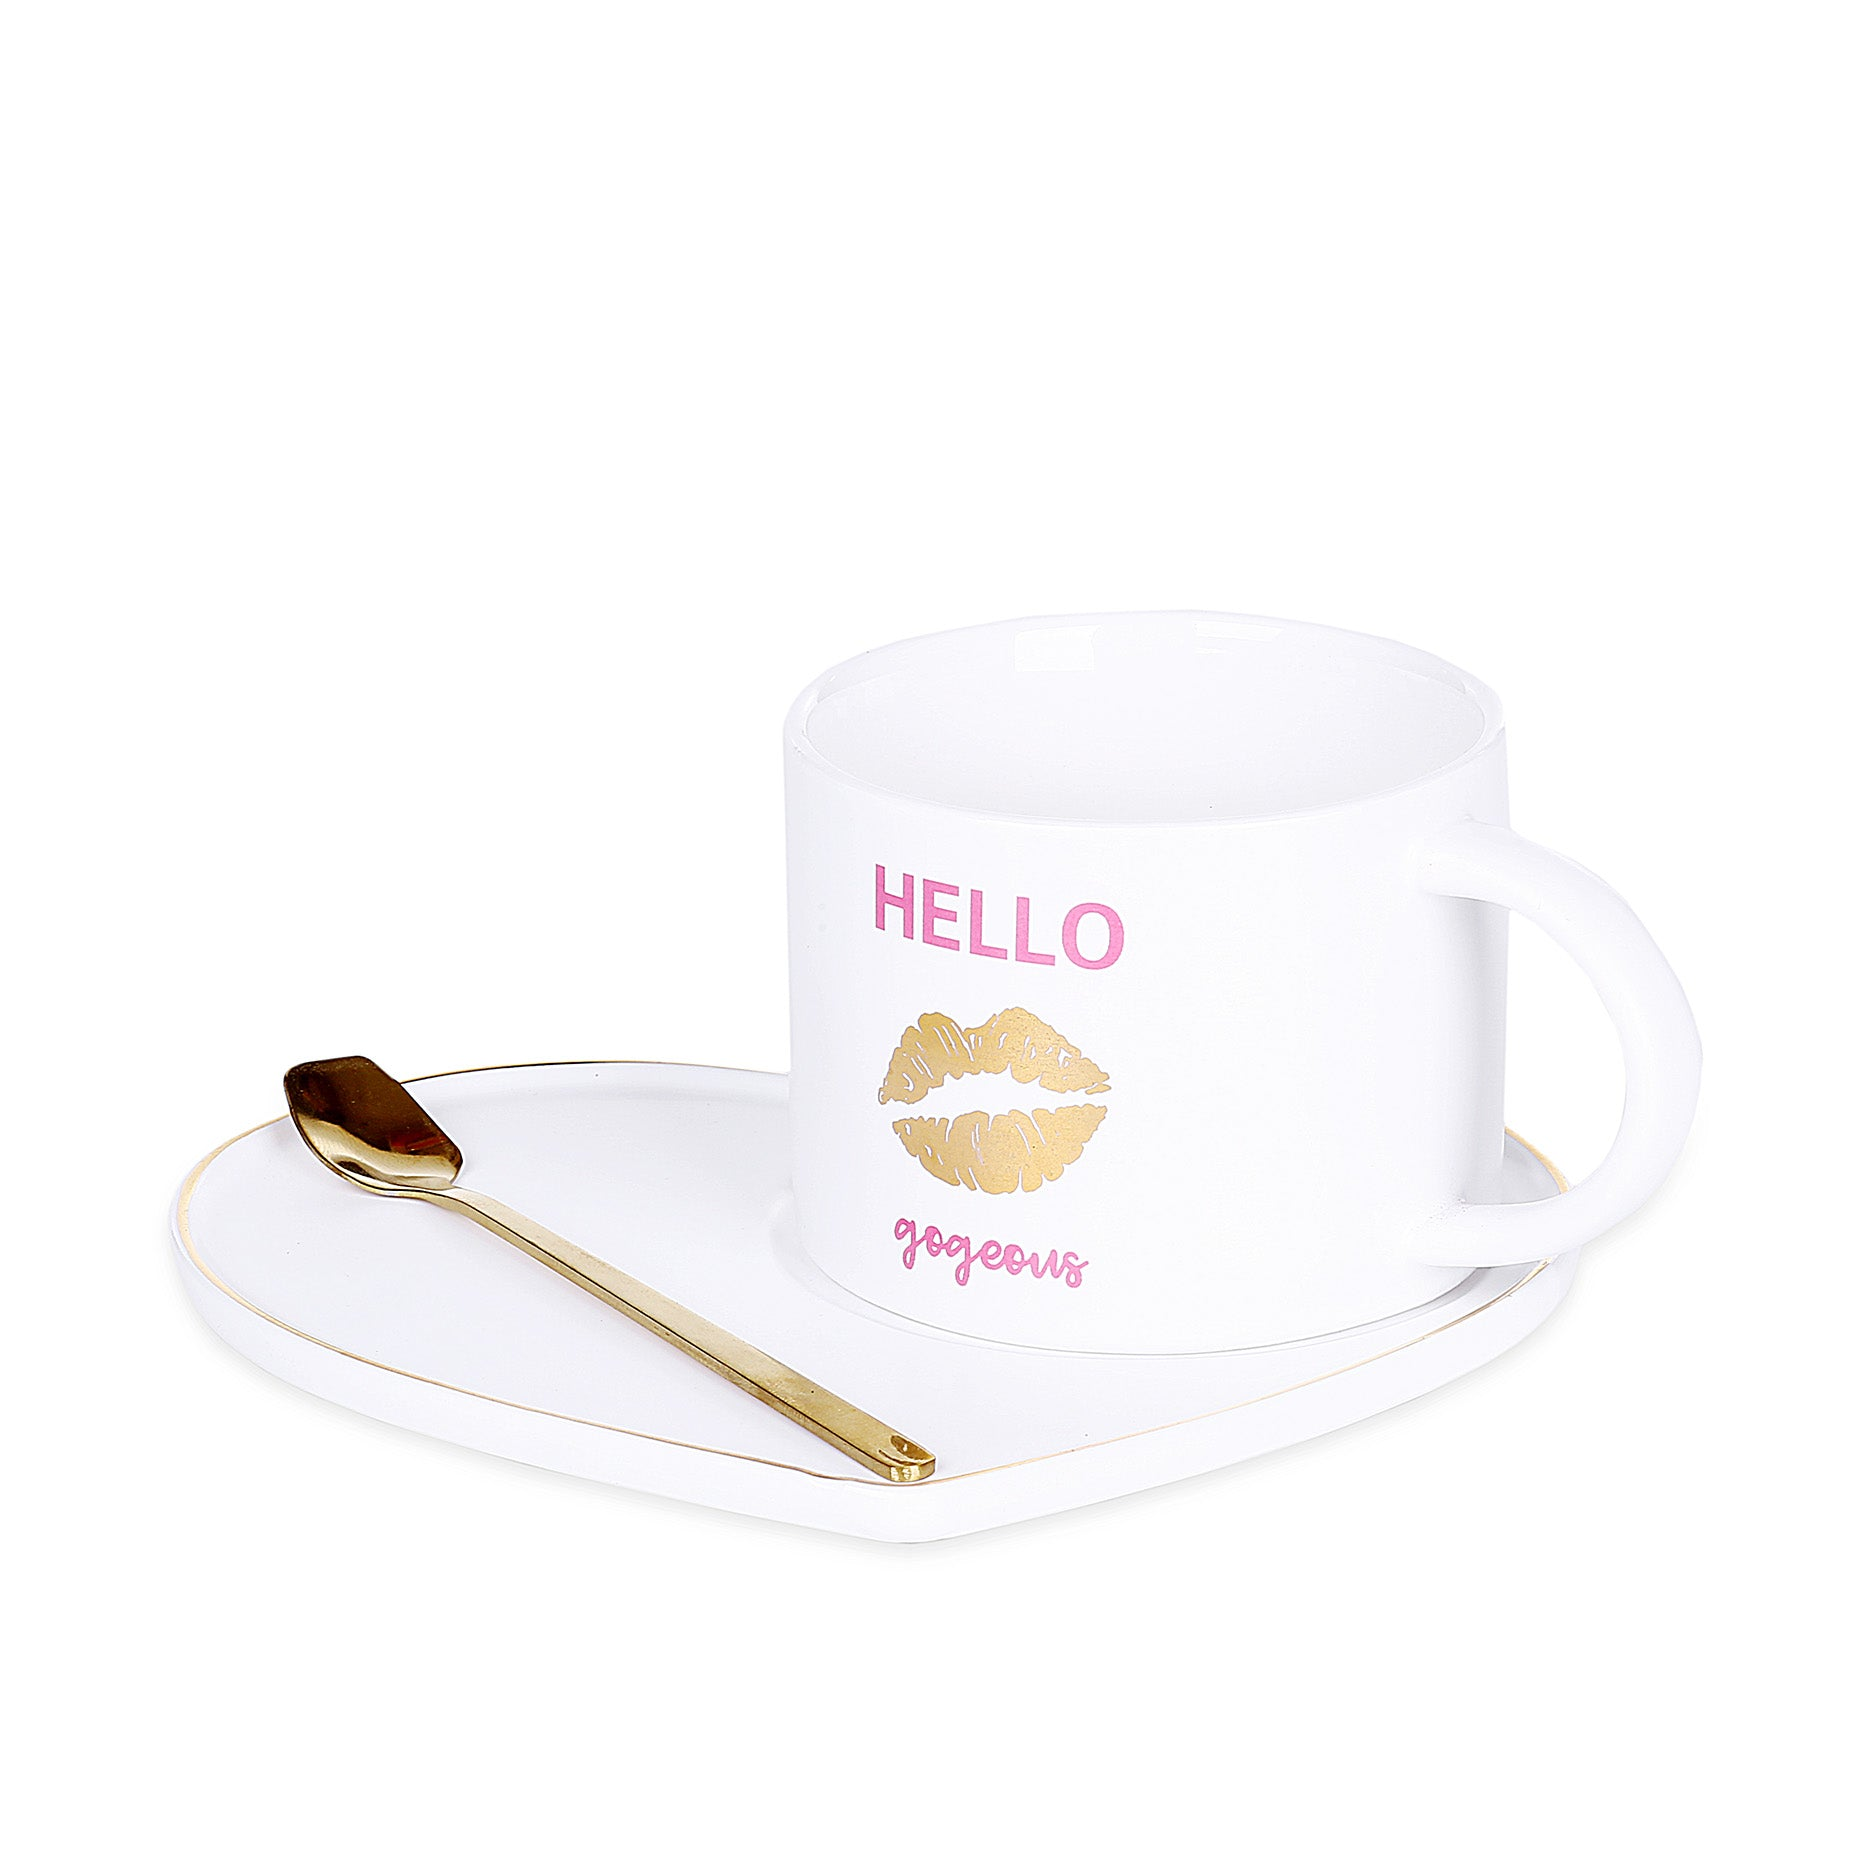 Heart White Mug With Tray & Spoon